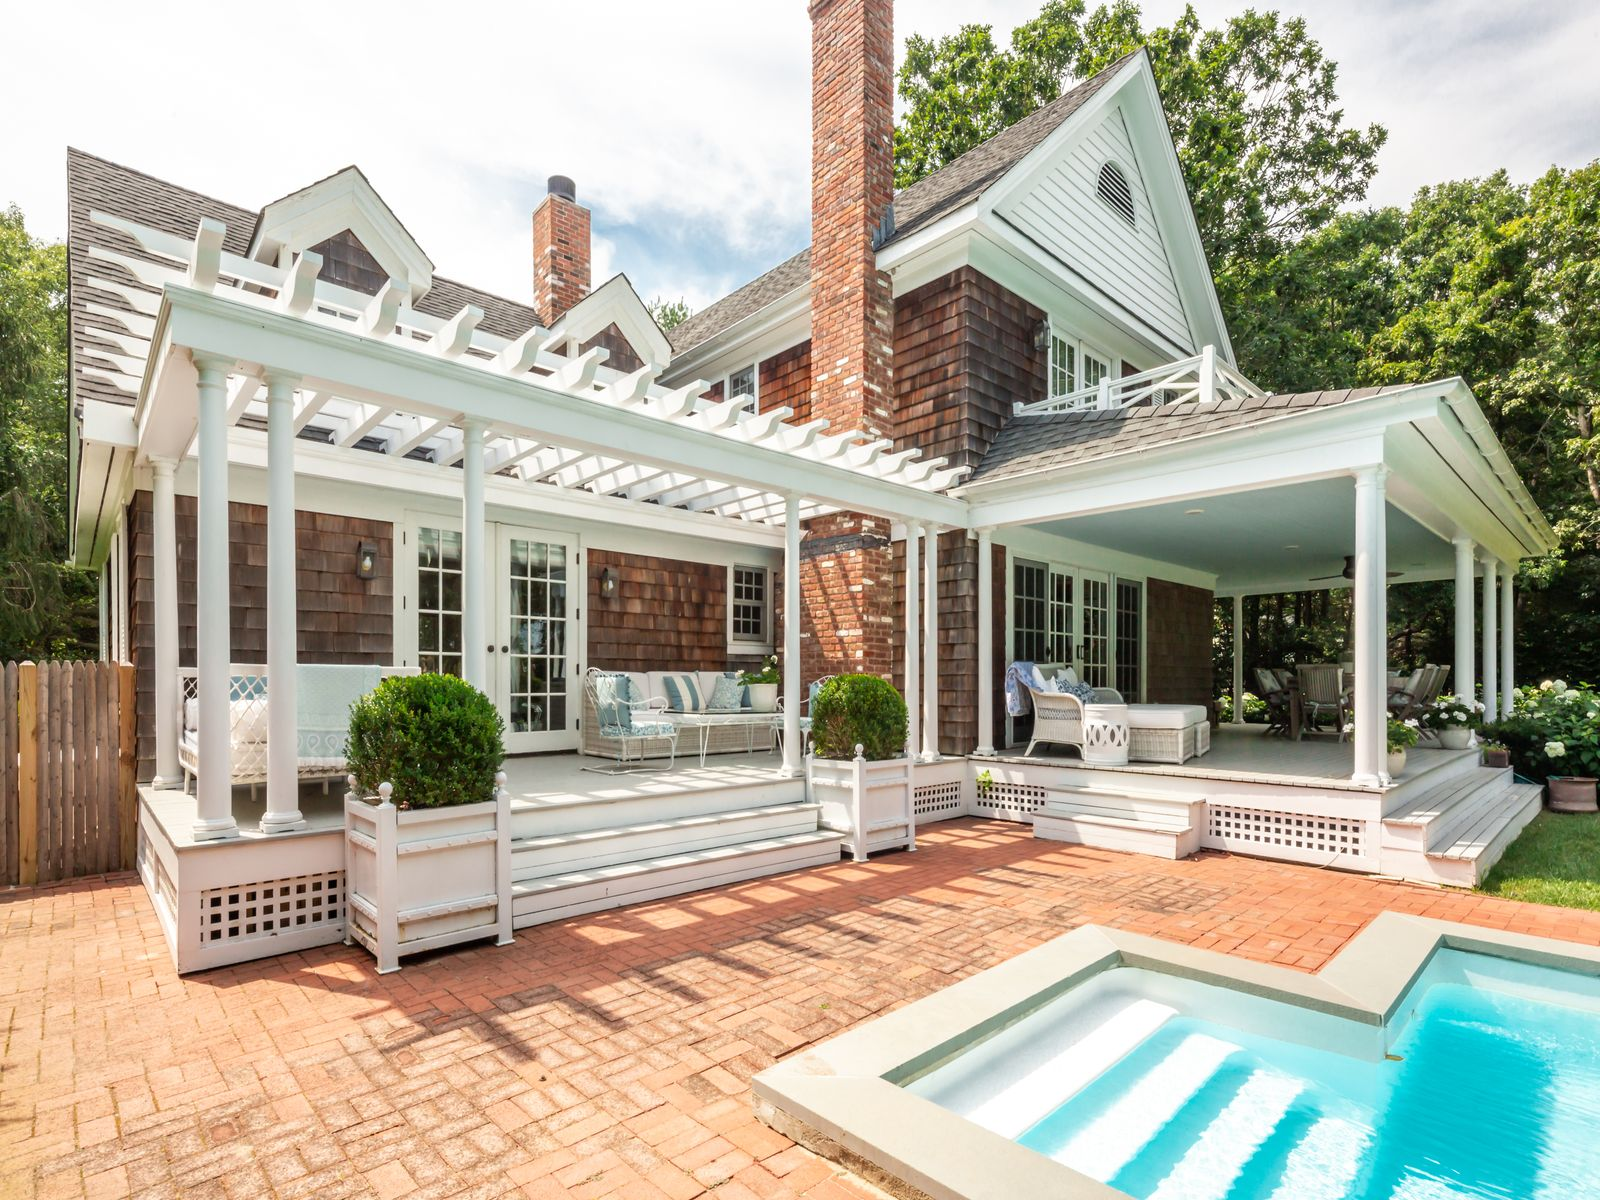 Chic and Serene in Water Mill